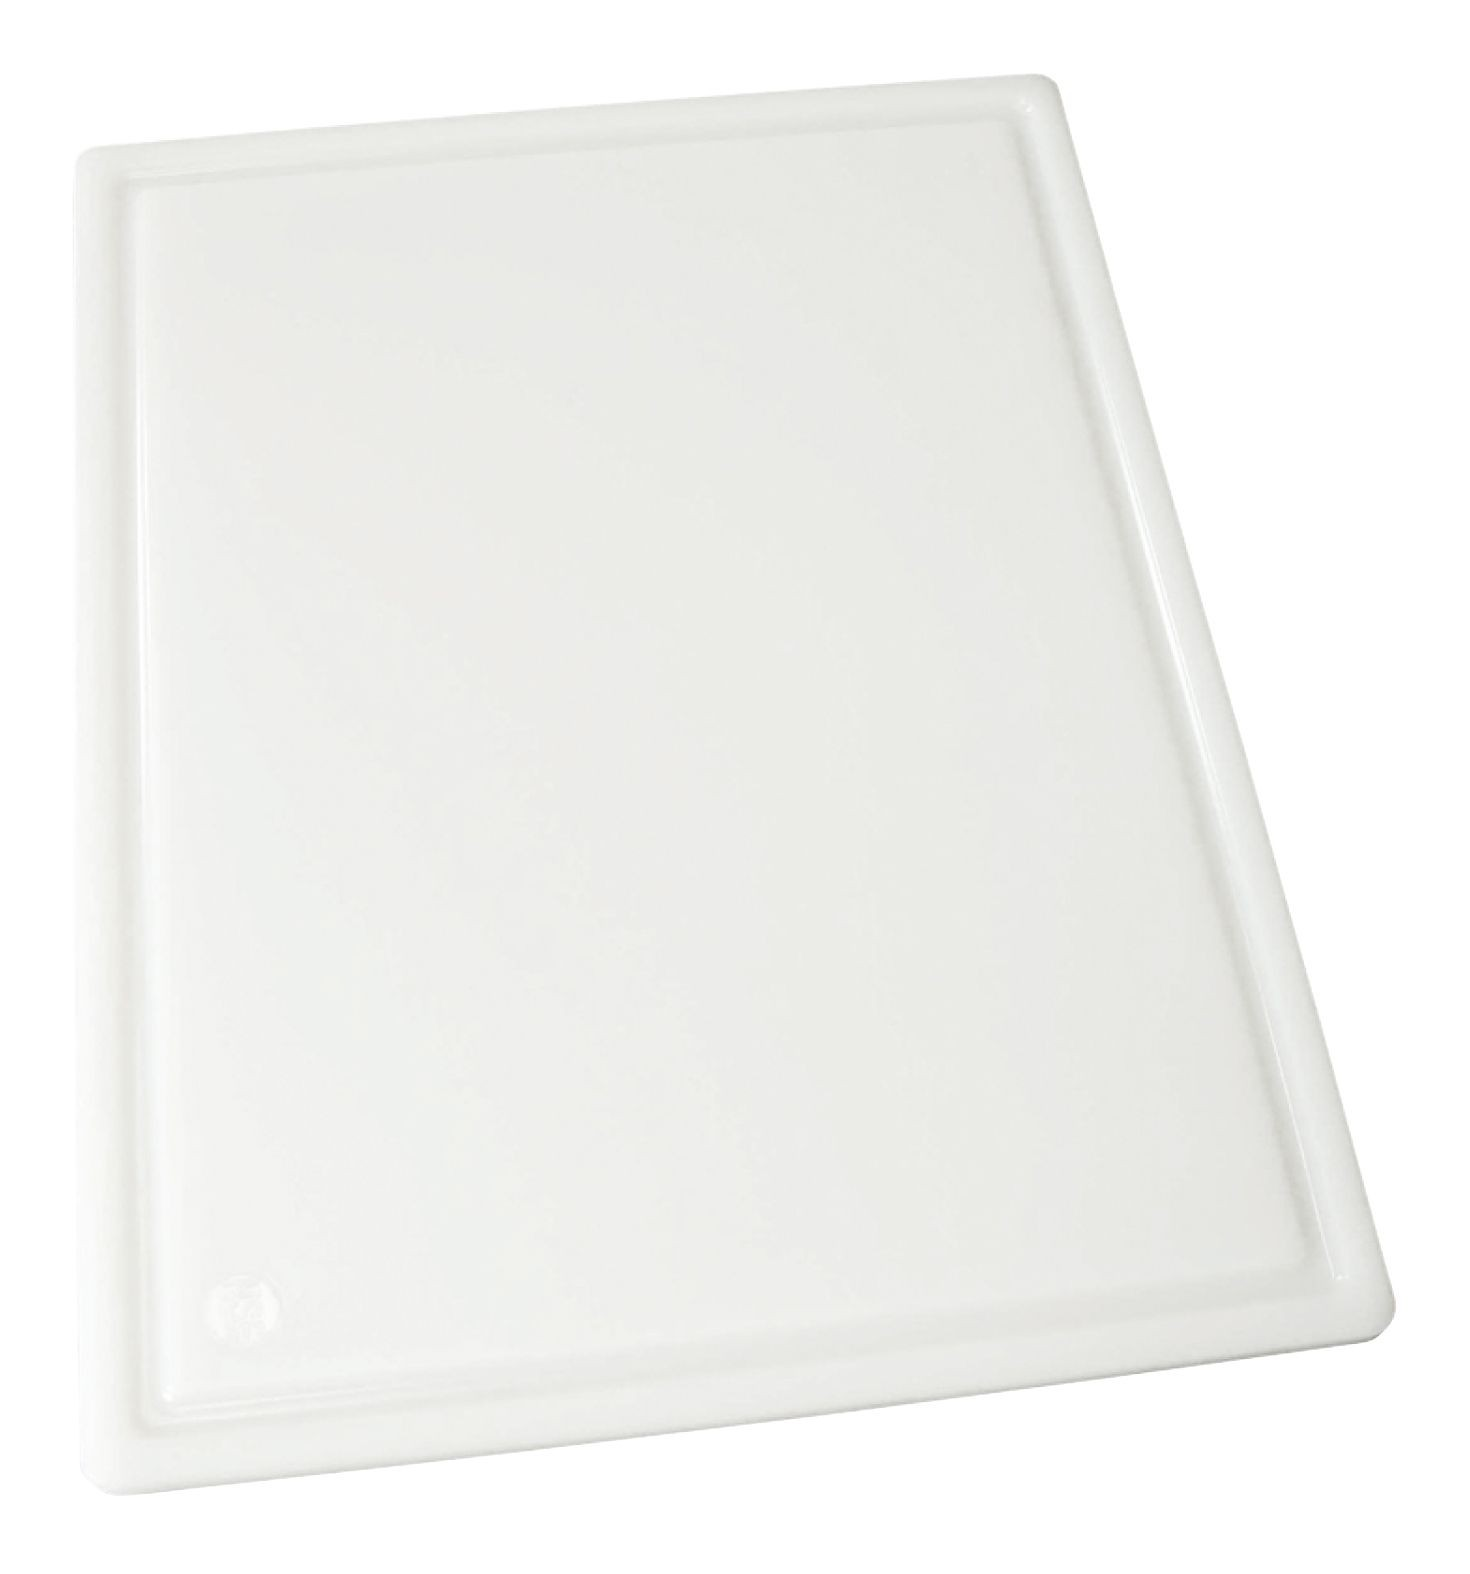 Grooved Cutting Board 18 X 24 X 3/4 White (Bakery & Dairy Board)